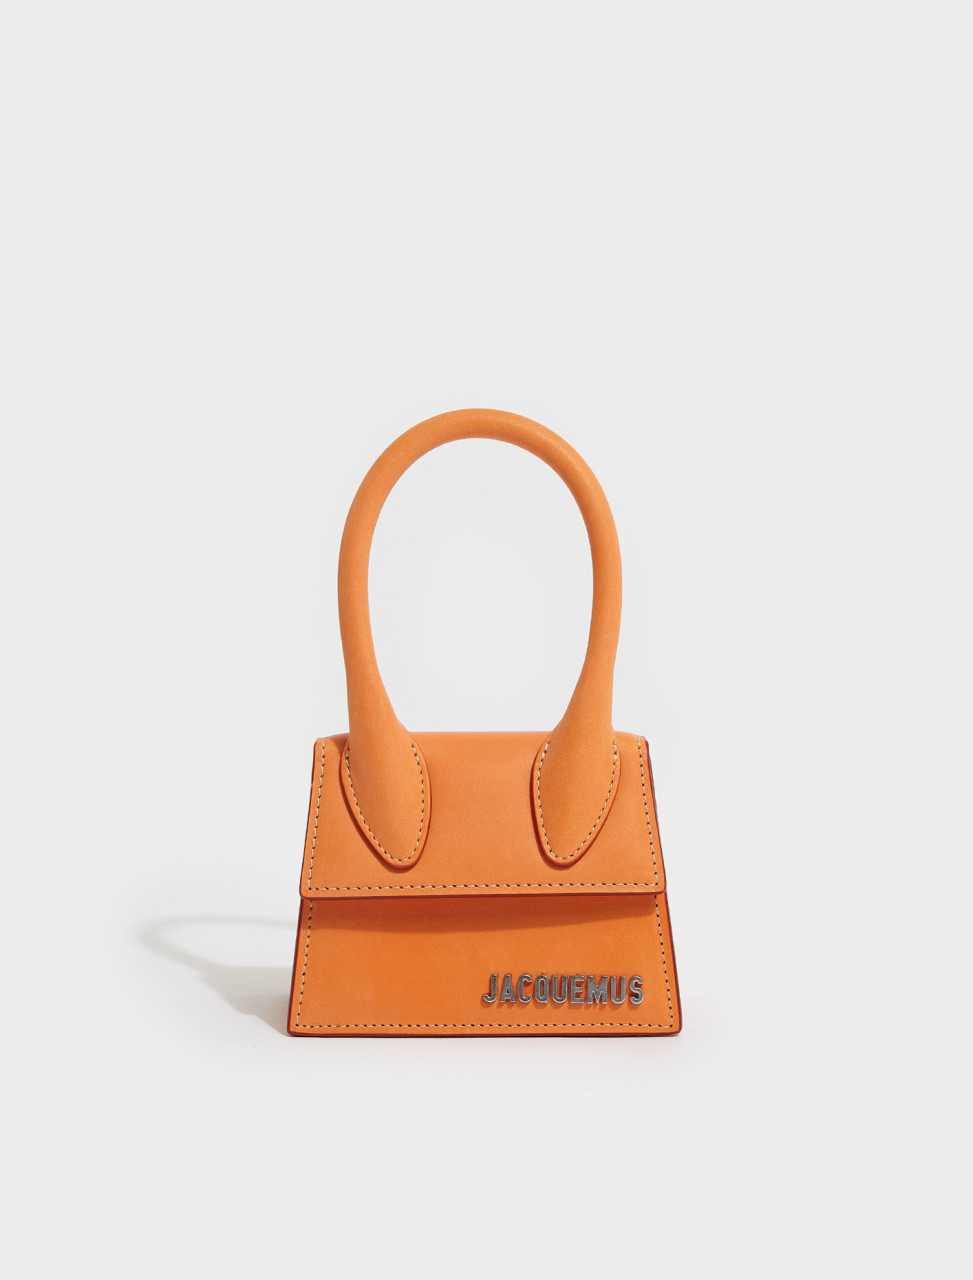 215BA01-215 304740 JACQUEMUS LE CHIQUITO ORANGE